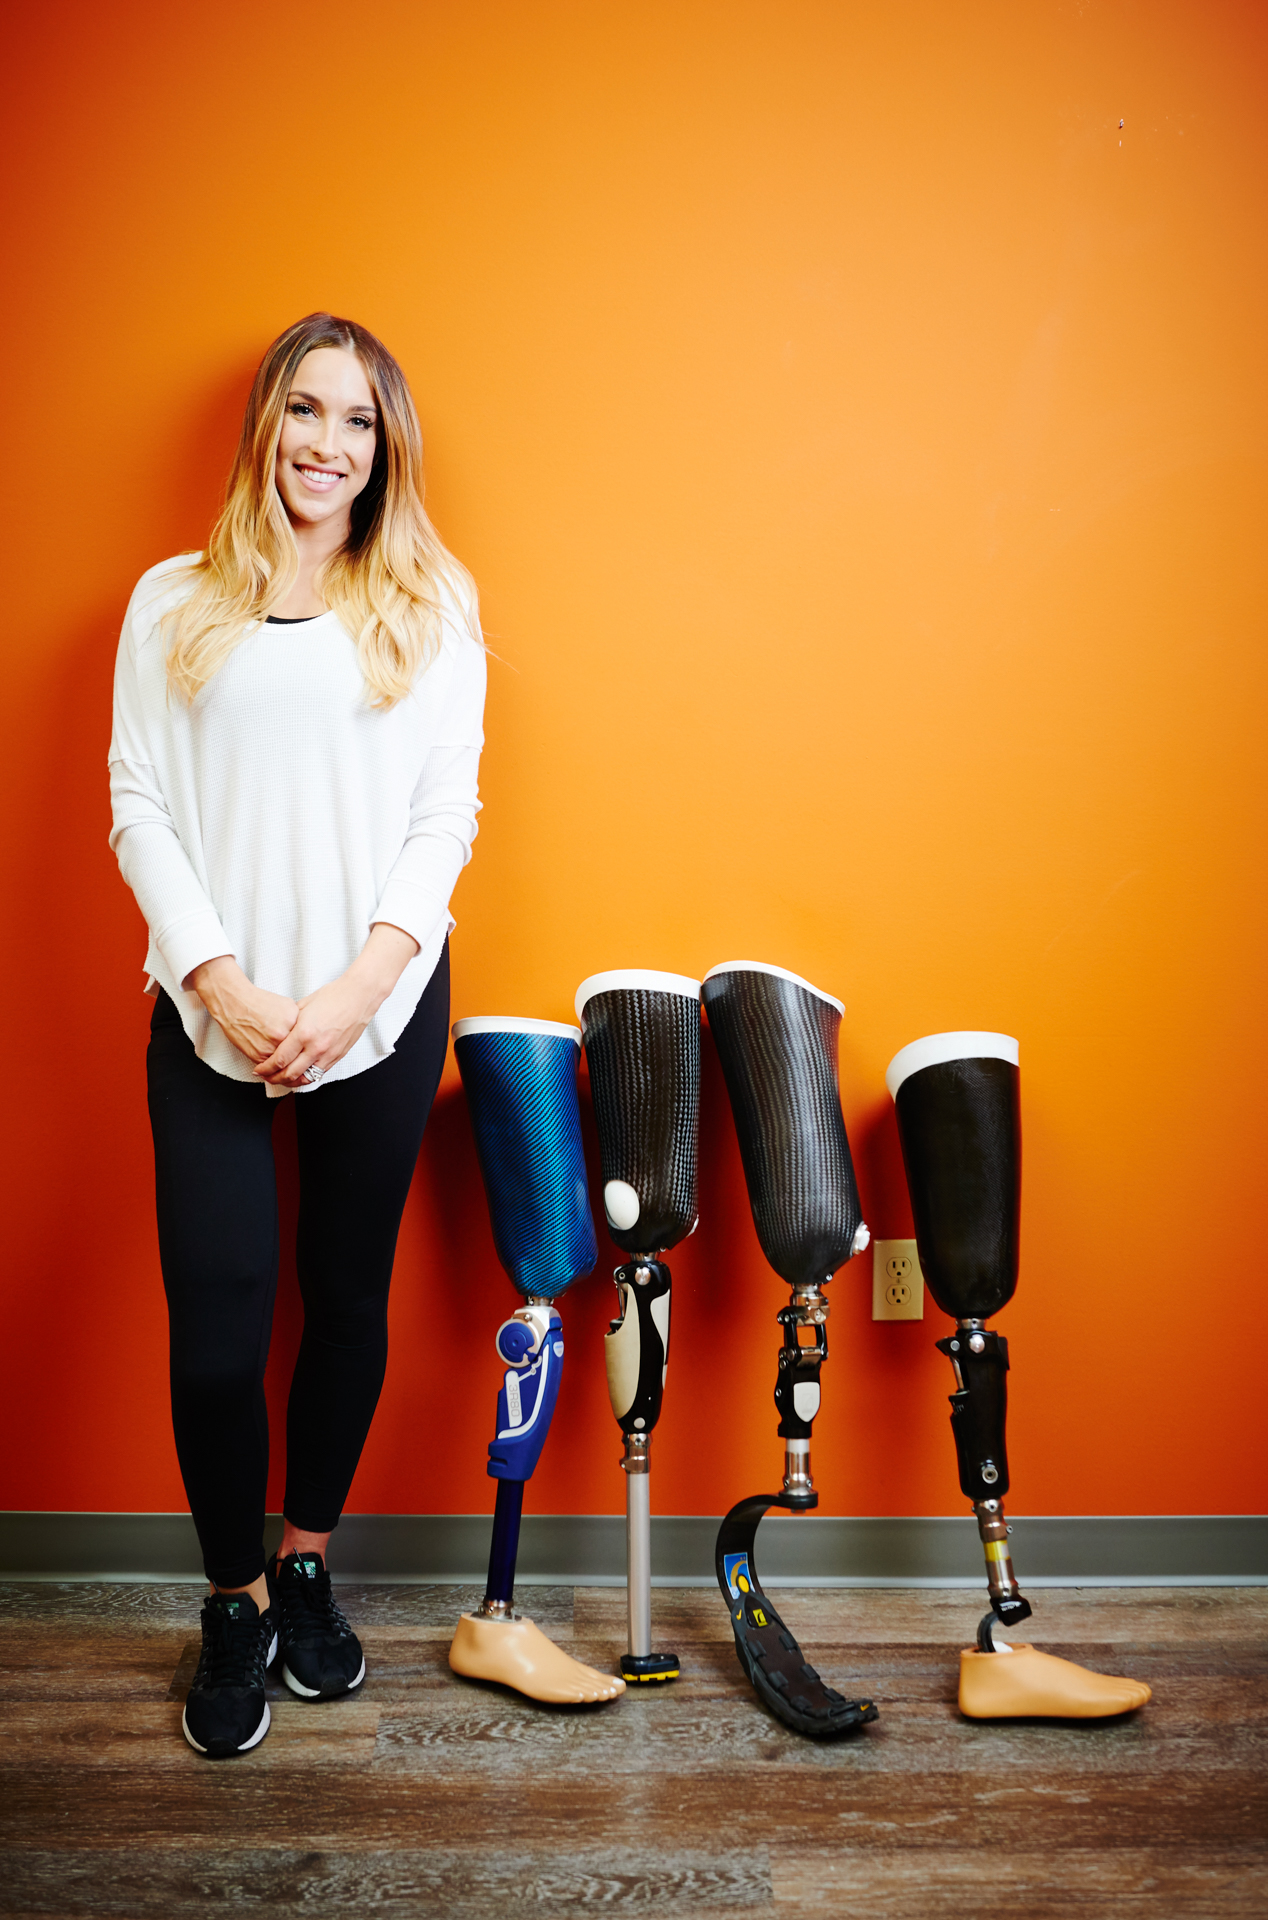 young woman with transfemoral prosthesis collection